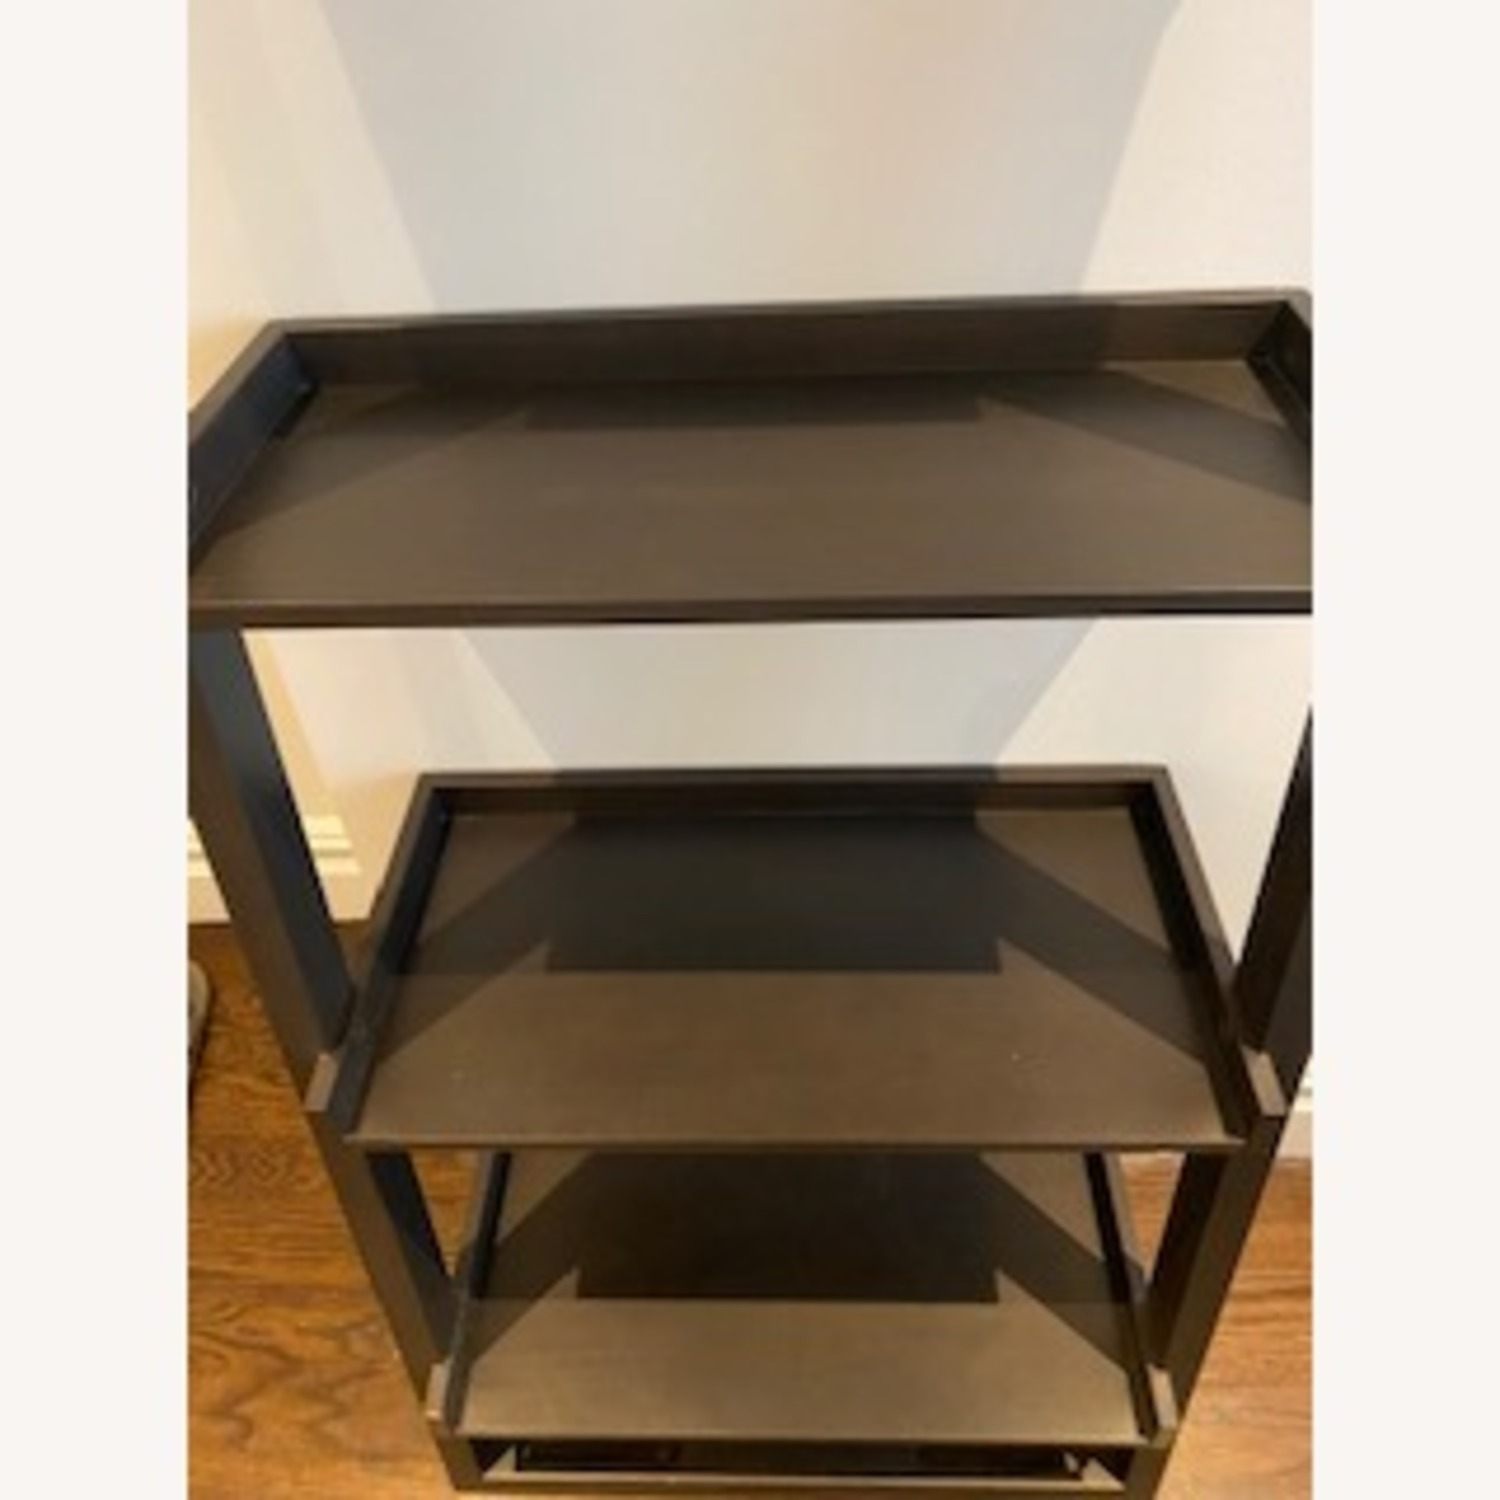 Crate and Barrel Sloane Leaning Bookcase - image-3